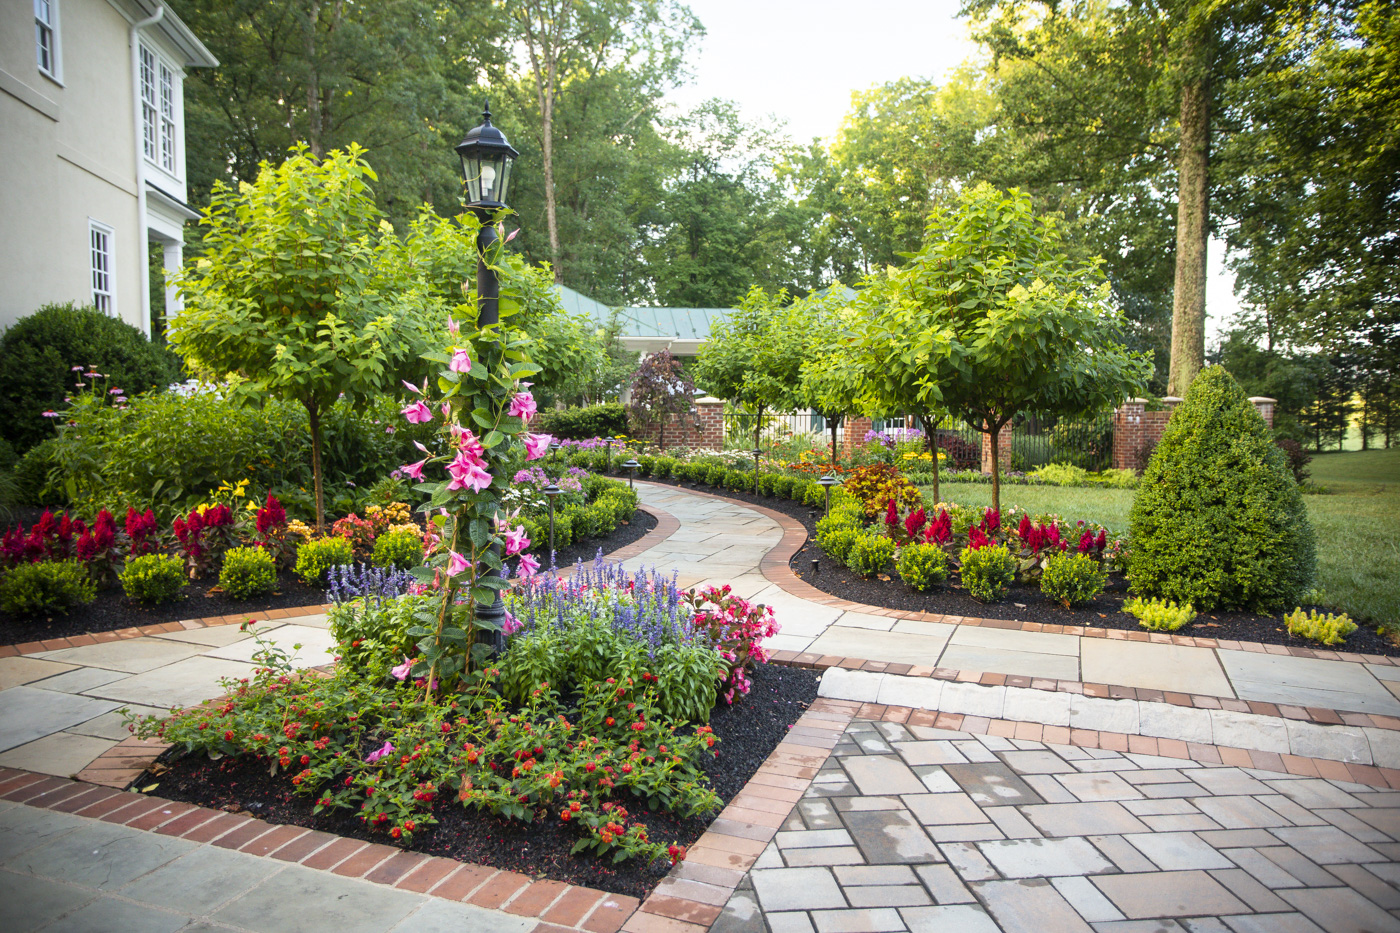 12 of the Best Low Maintenance Trees, Shrubs, & Plants for Ashburn, Aldie, & Leesburg, VA